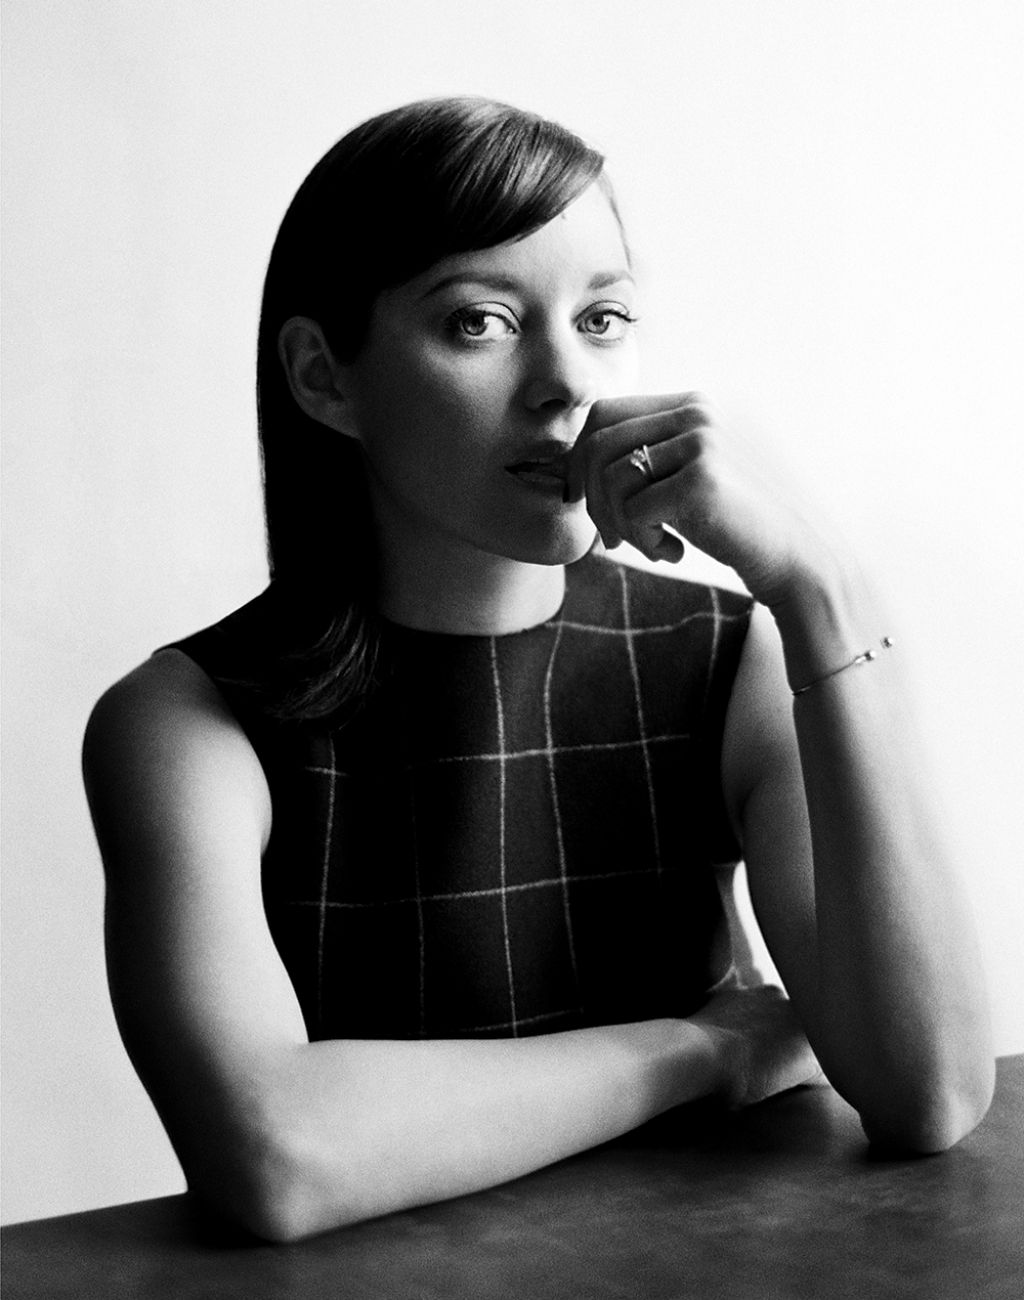 Marion Cotillard Photoshoot For Variety May 2014 (by Pari Dukovic)